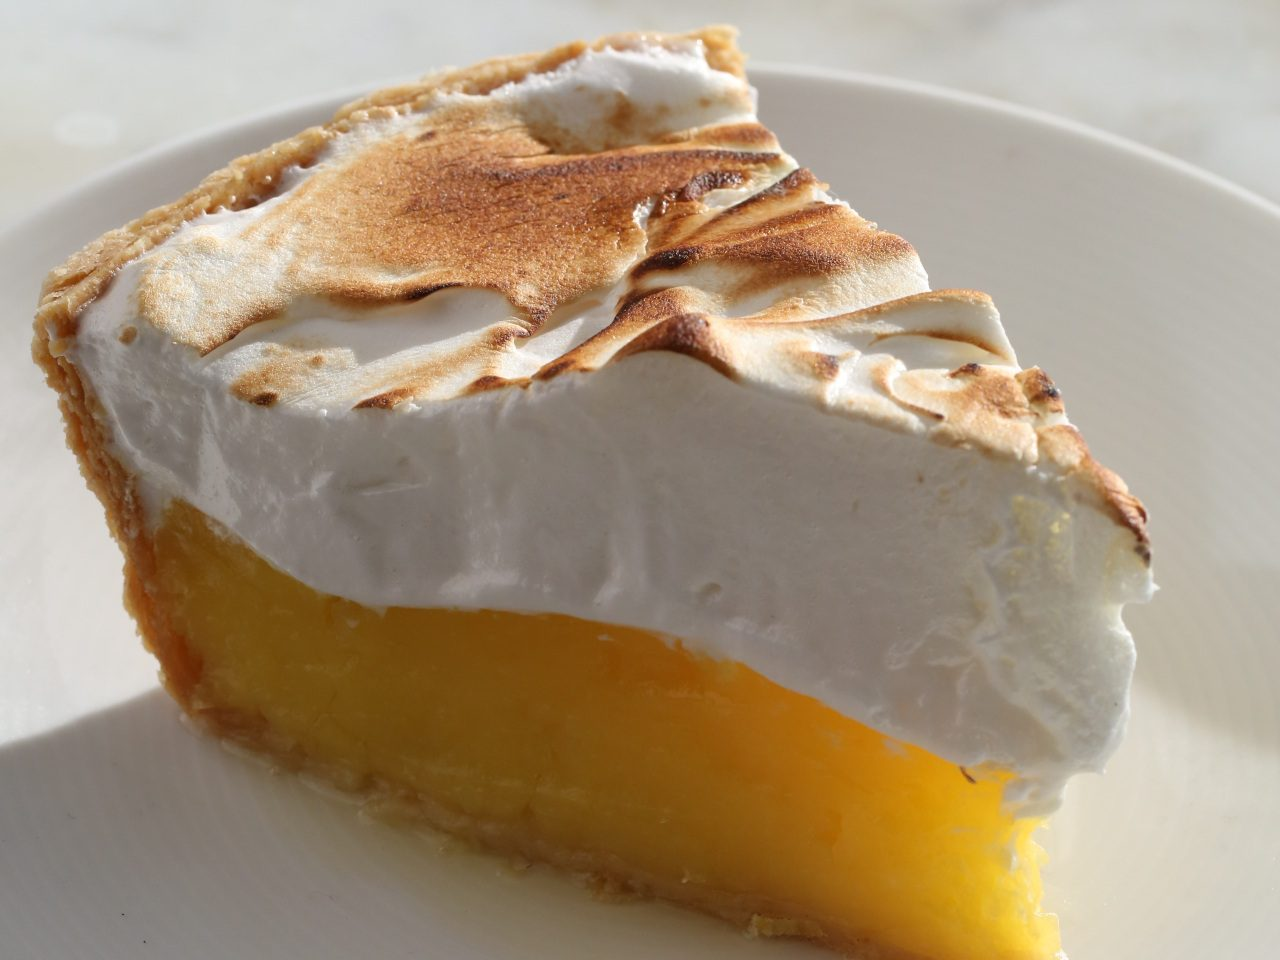 Lemon Meringue Pie Reloaded